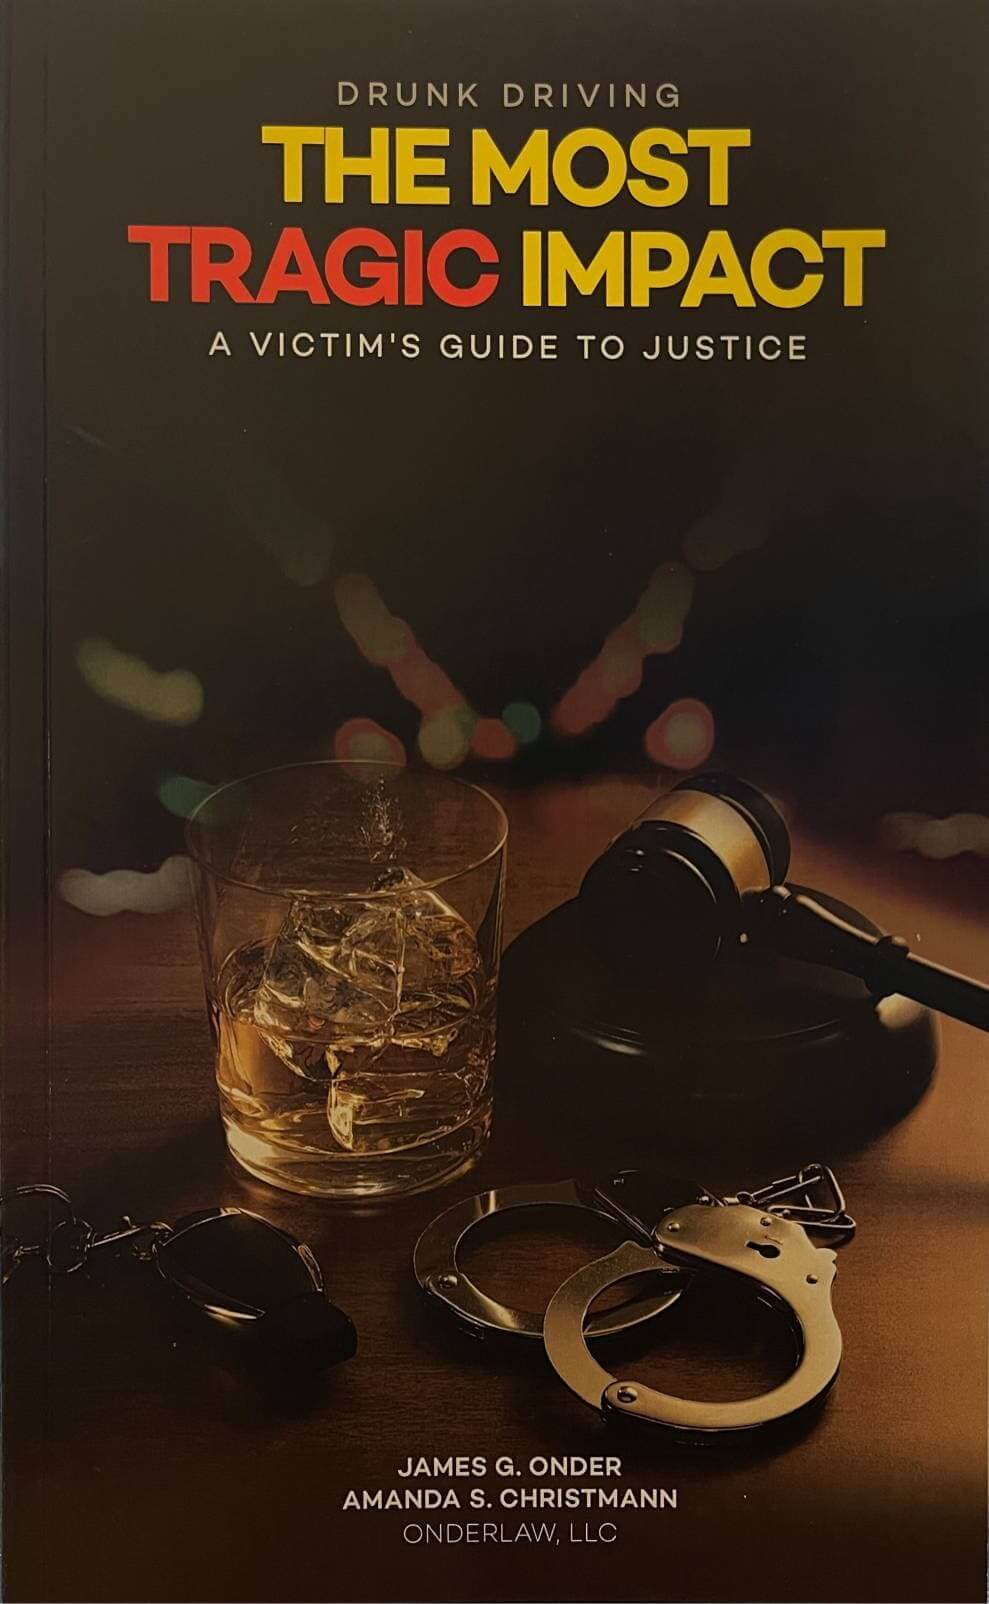 Drunk Driving | The most Tragic Impact Book by James G. Onder